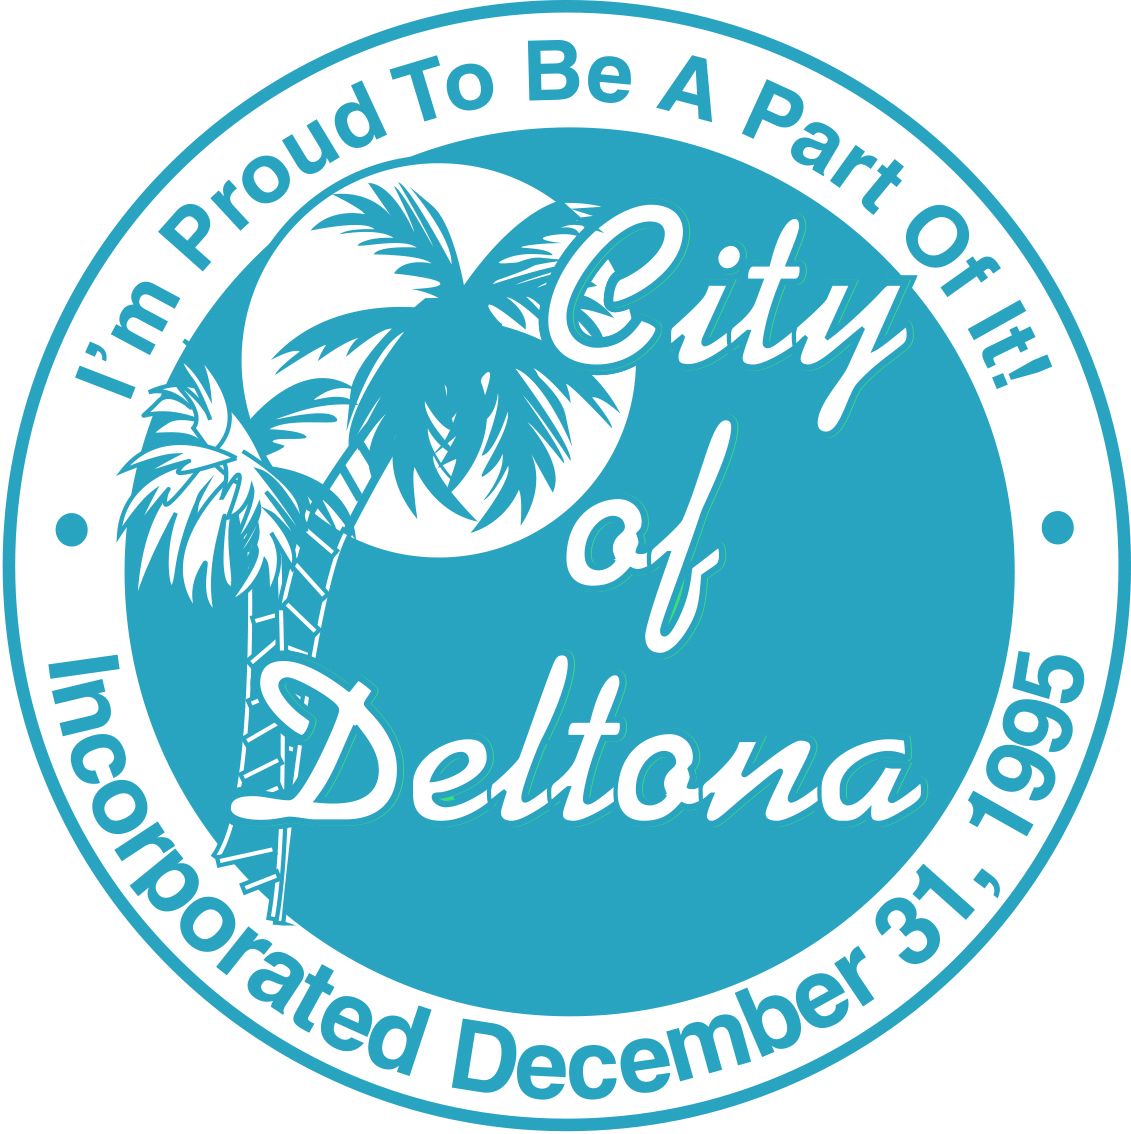 City of Deltona Economic Development